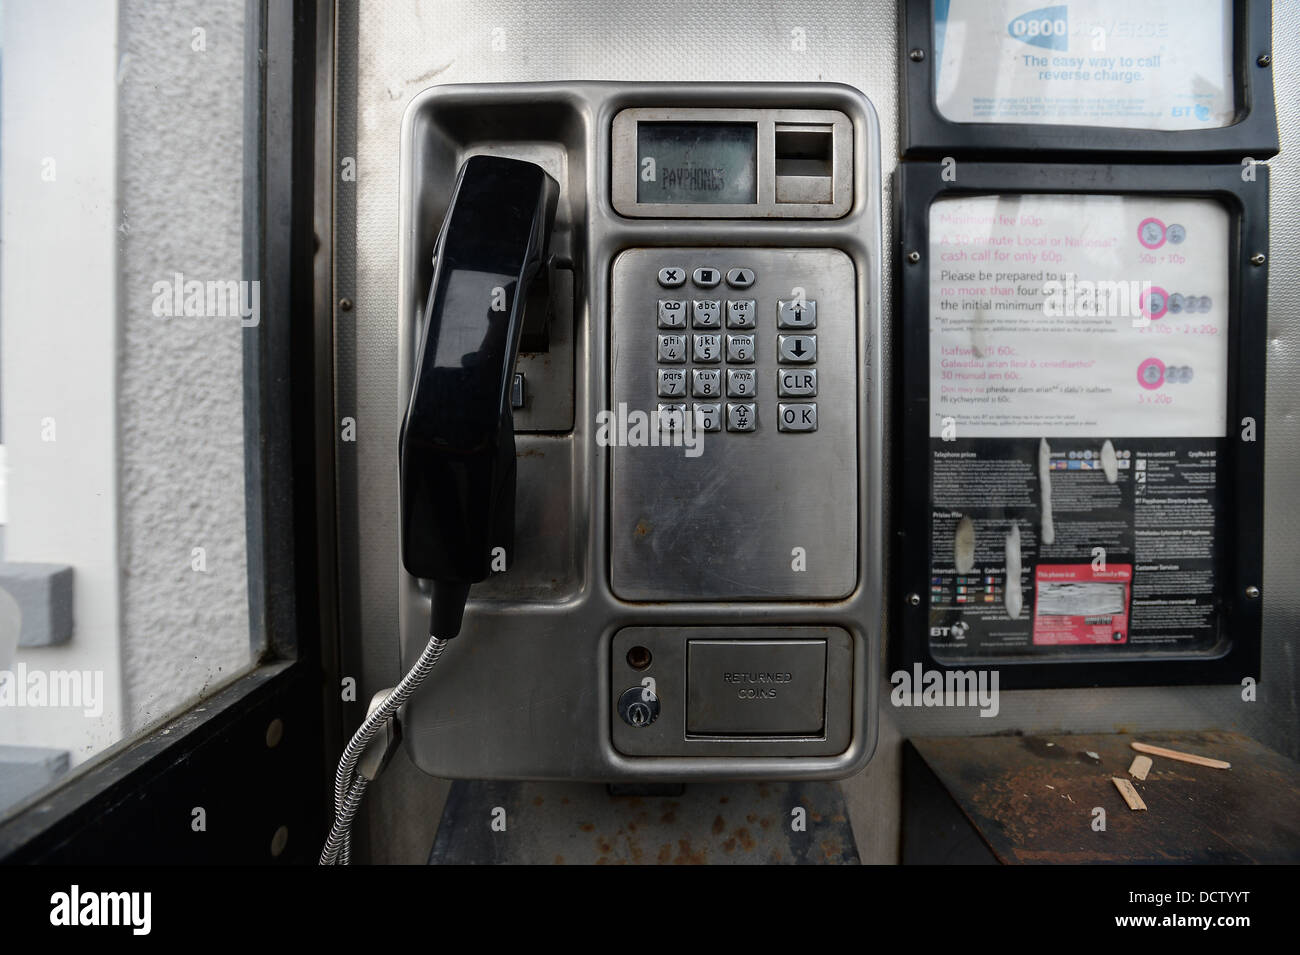 The inside of a British Telecom (BT) telephone box. - Stock Image